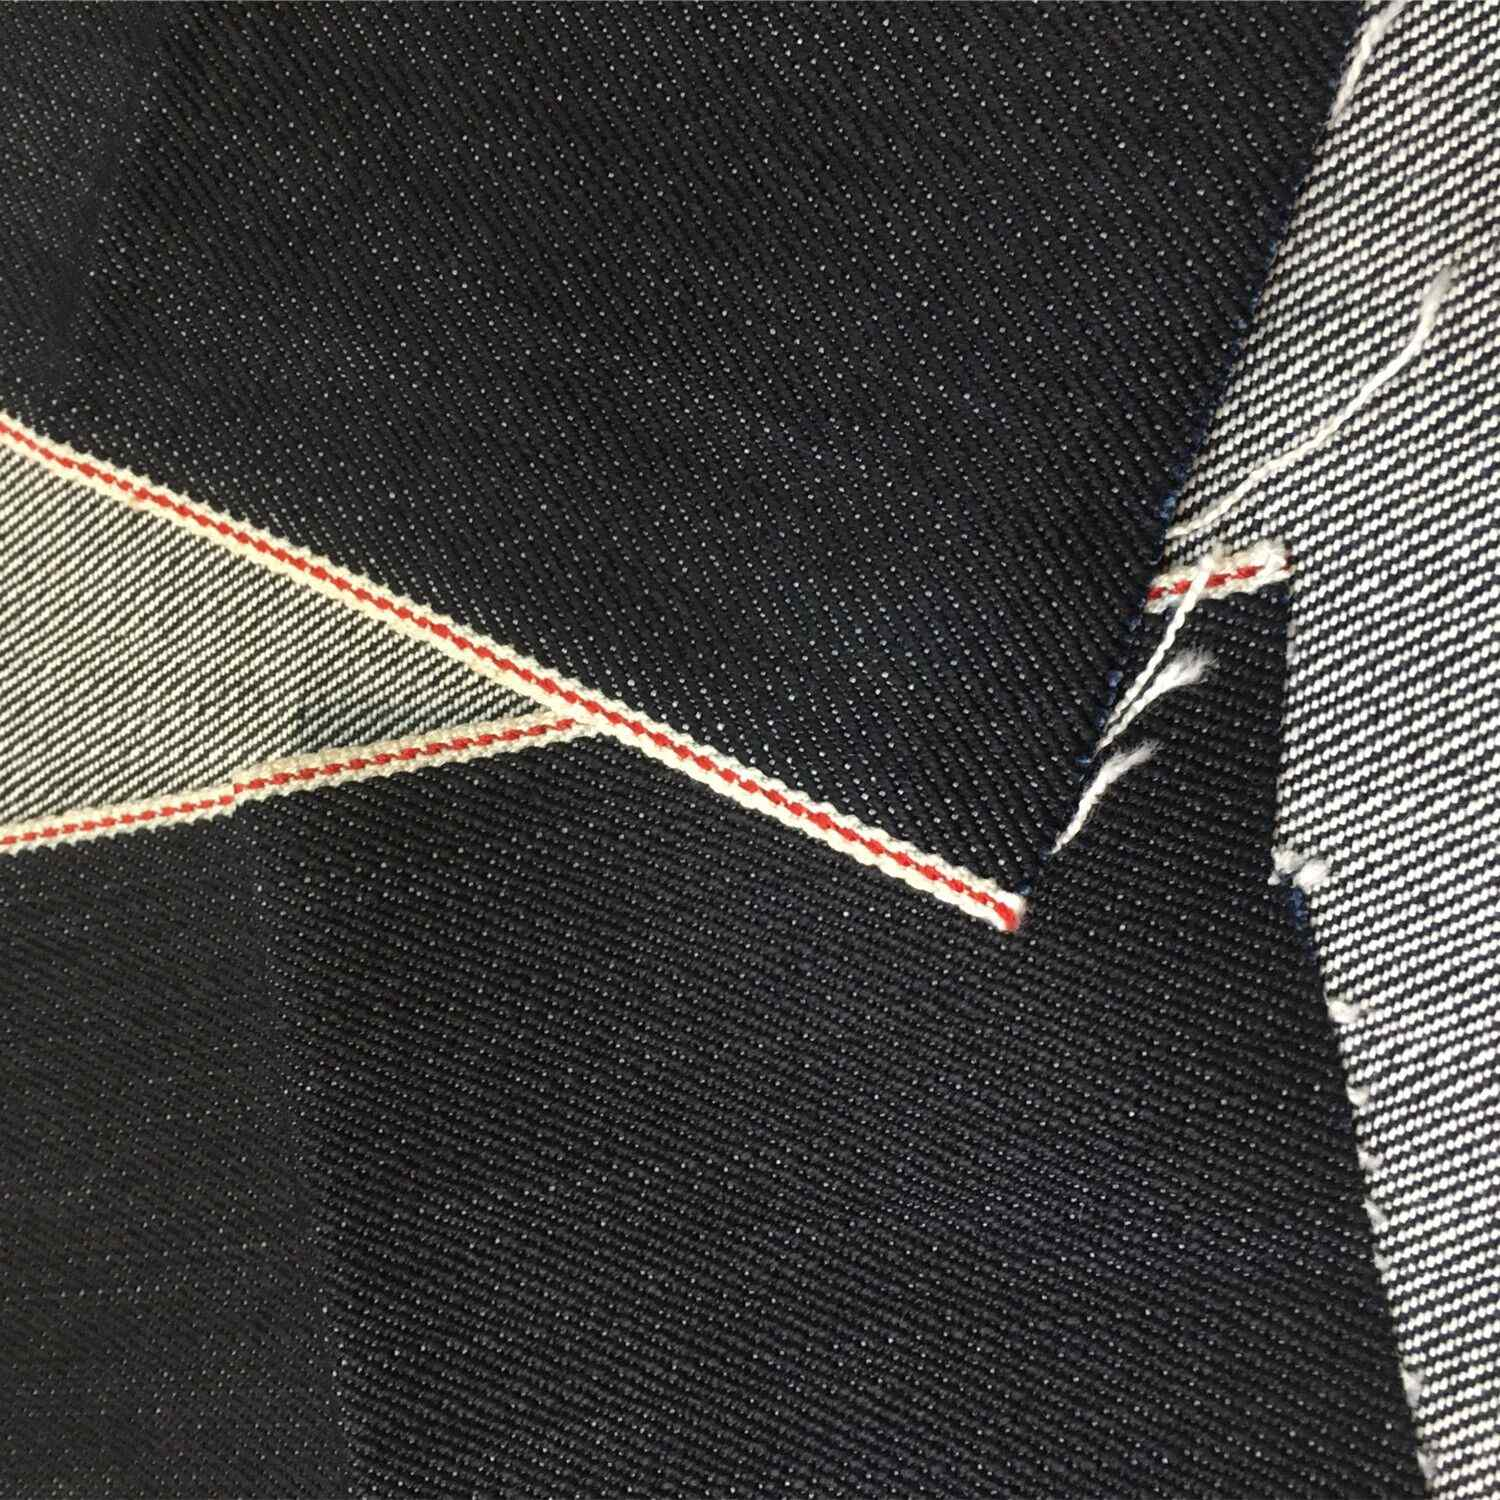 Wingfly Textile Co. Ltd Offers A Wide Range of Quality Selvedge And Custom Made Jeans Exceptionally For Clothing Companies Globally